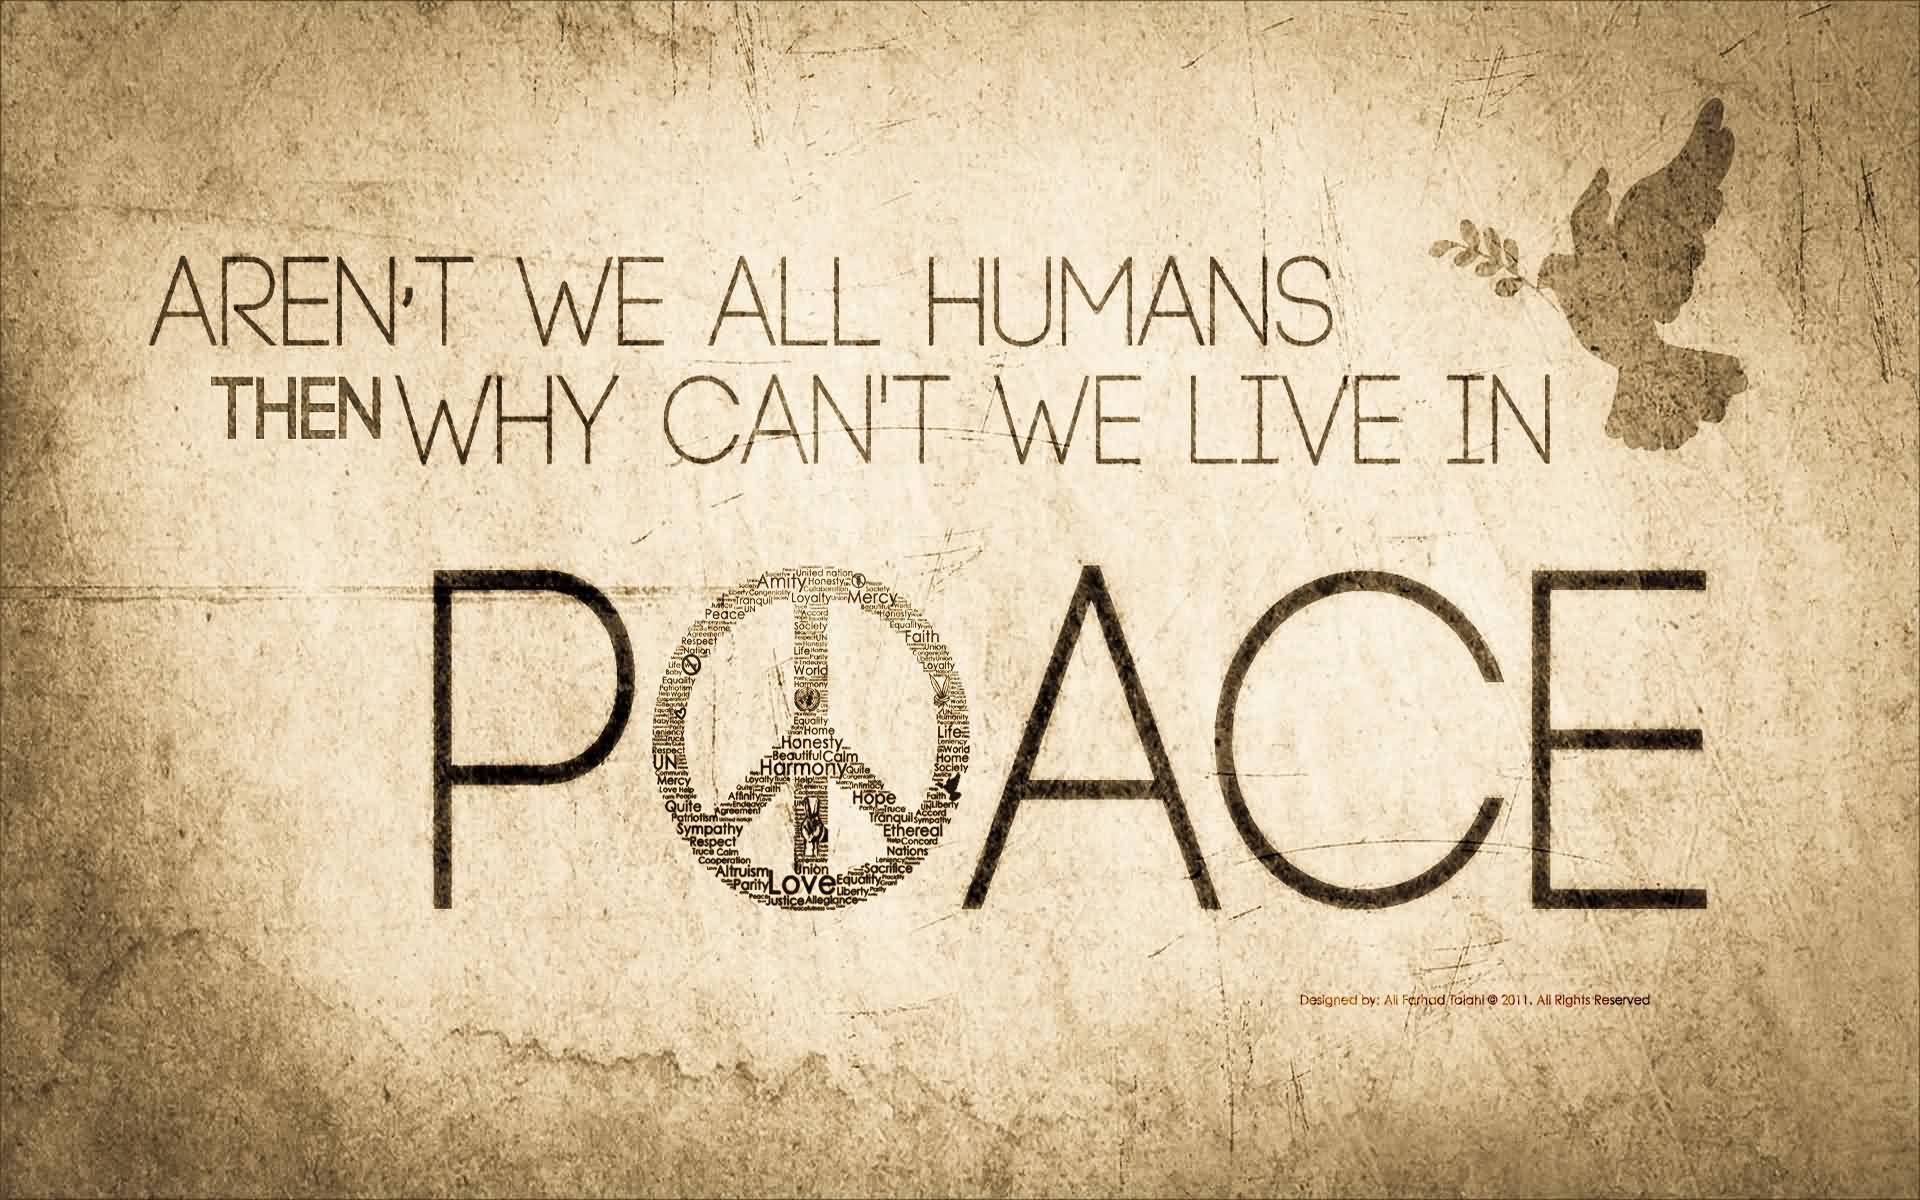 New Life Quote Image-Why cant we lives in Peace